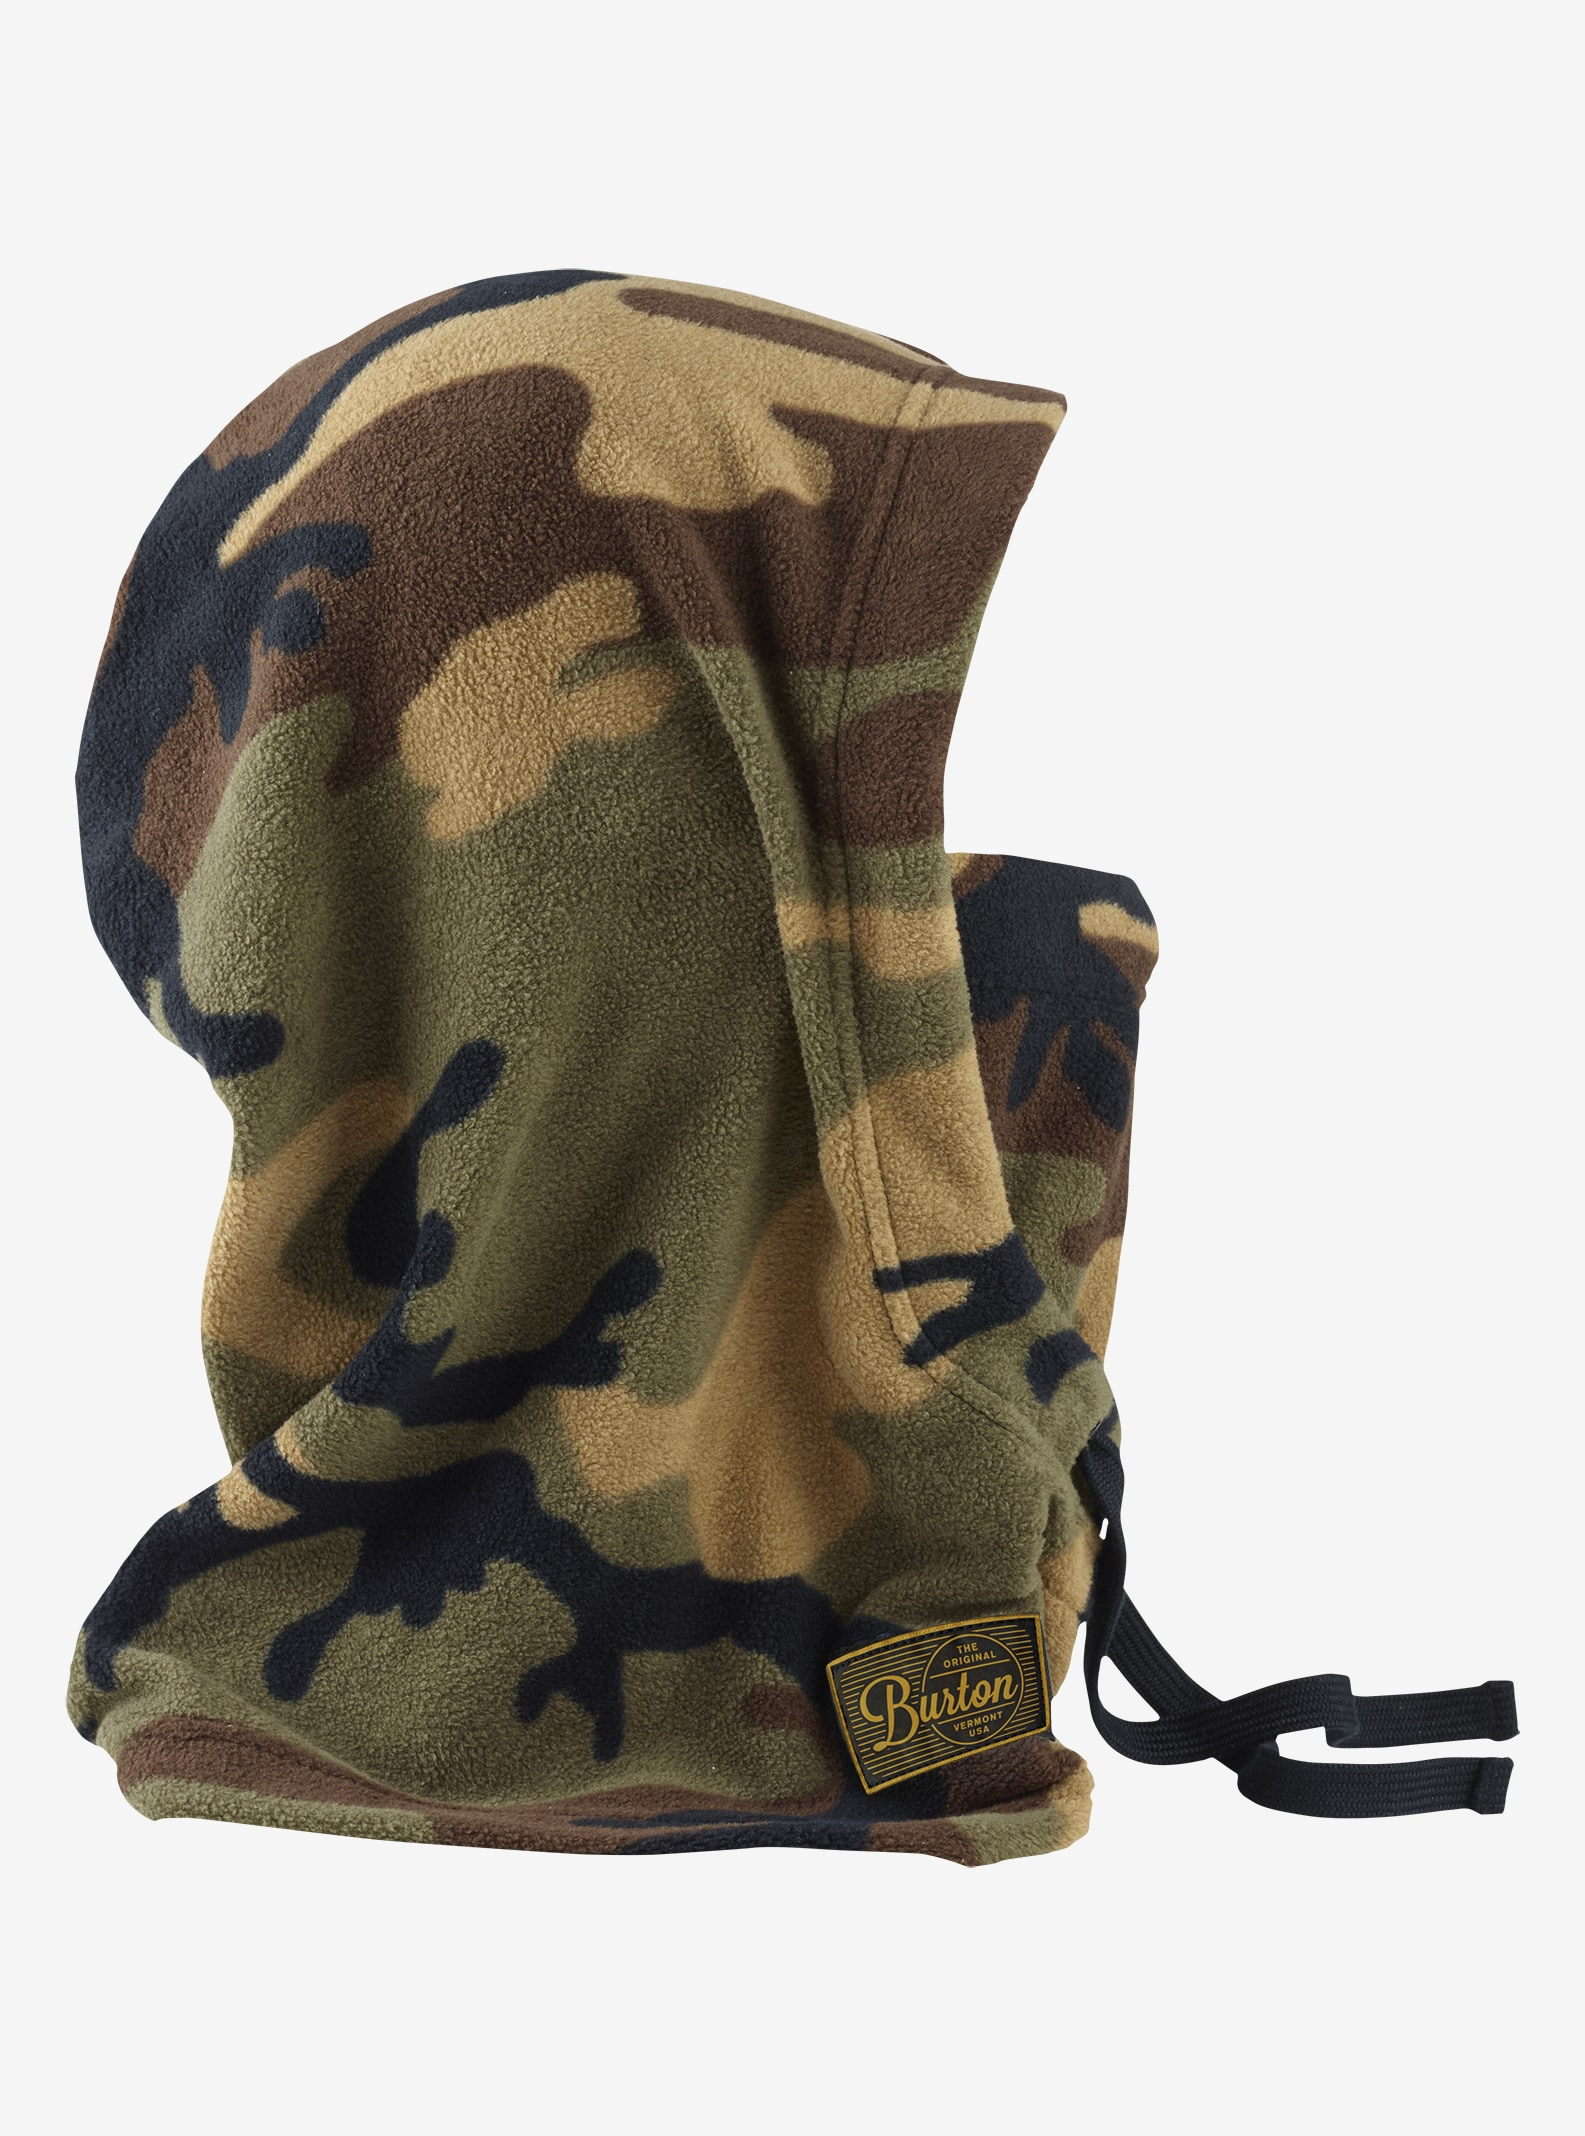 Burton Burke Hood shown in Highland Camo